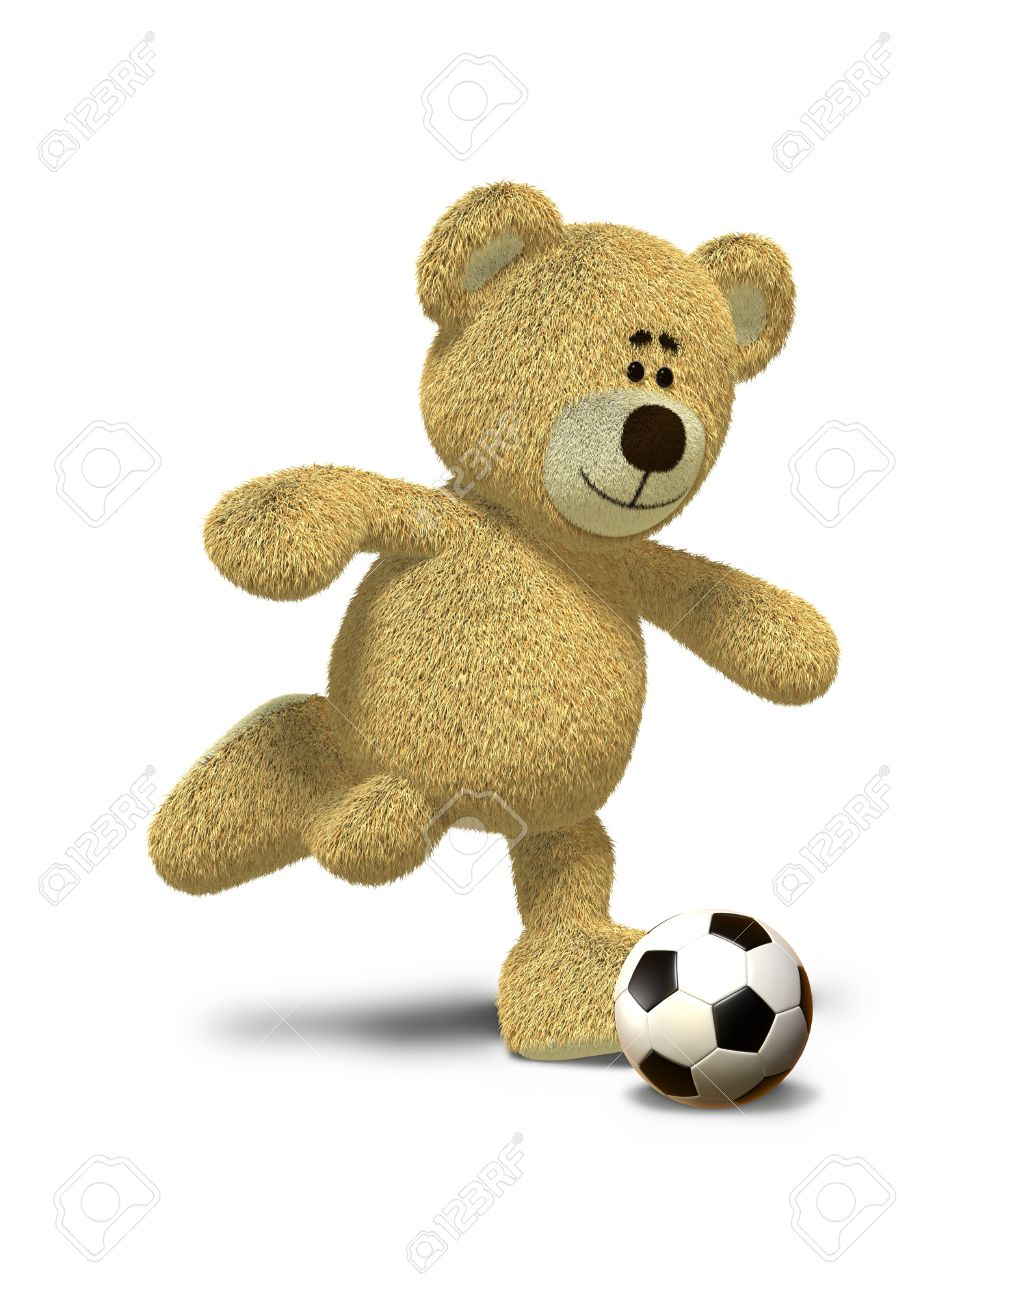 a9030e8c Stock Photo - Teddy Bear is about to kick a soccer ball that lies in front  of him. This image is isolated on a white background with soft shadow.